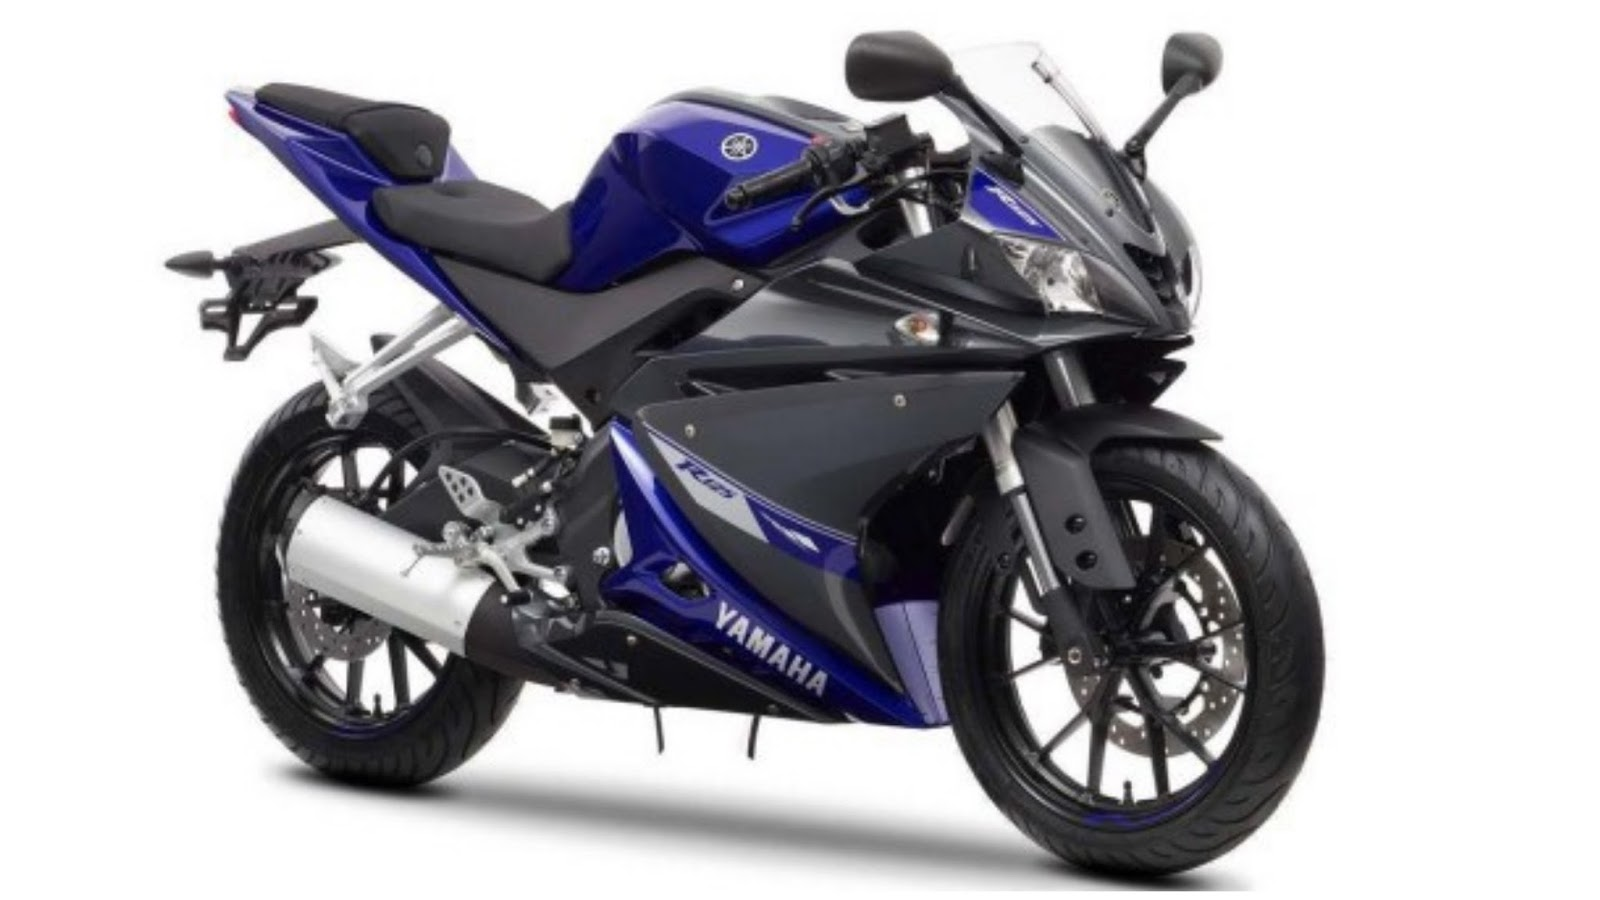 Upcoming Yamaha Yzf R15 V3 Price Specification Details Colors In